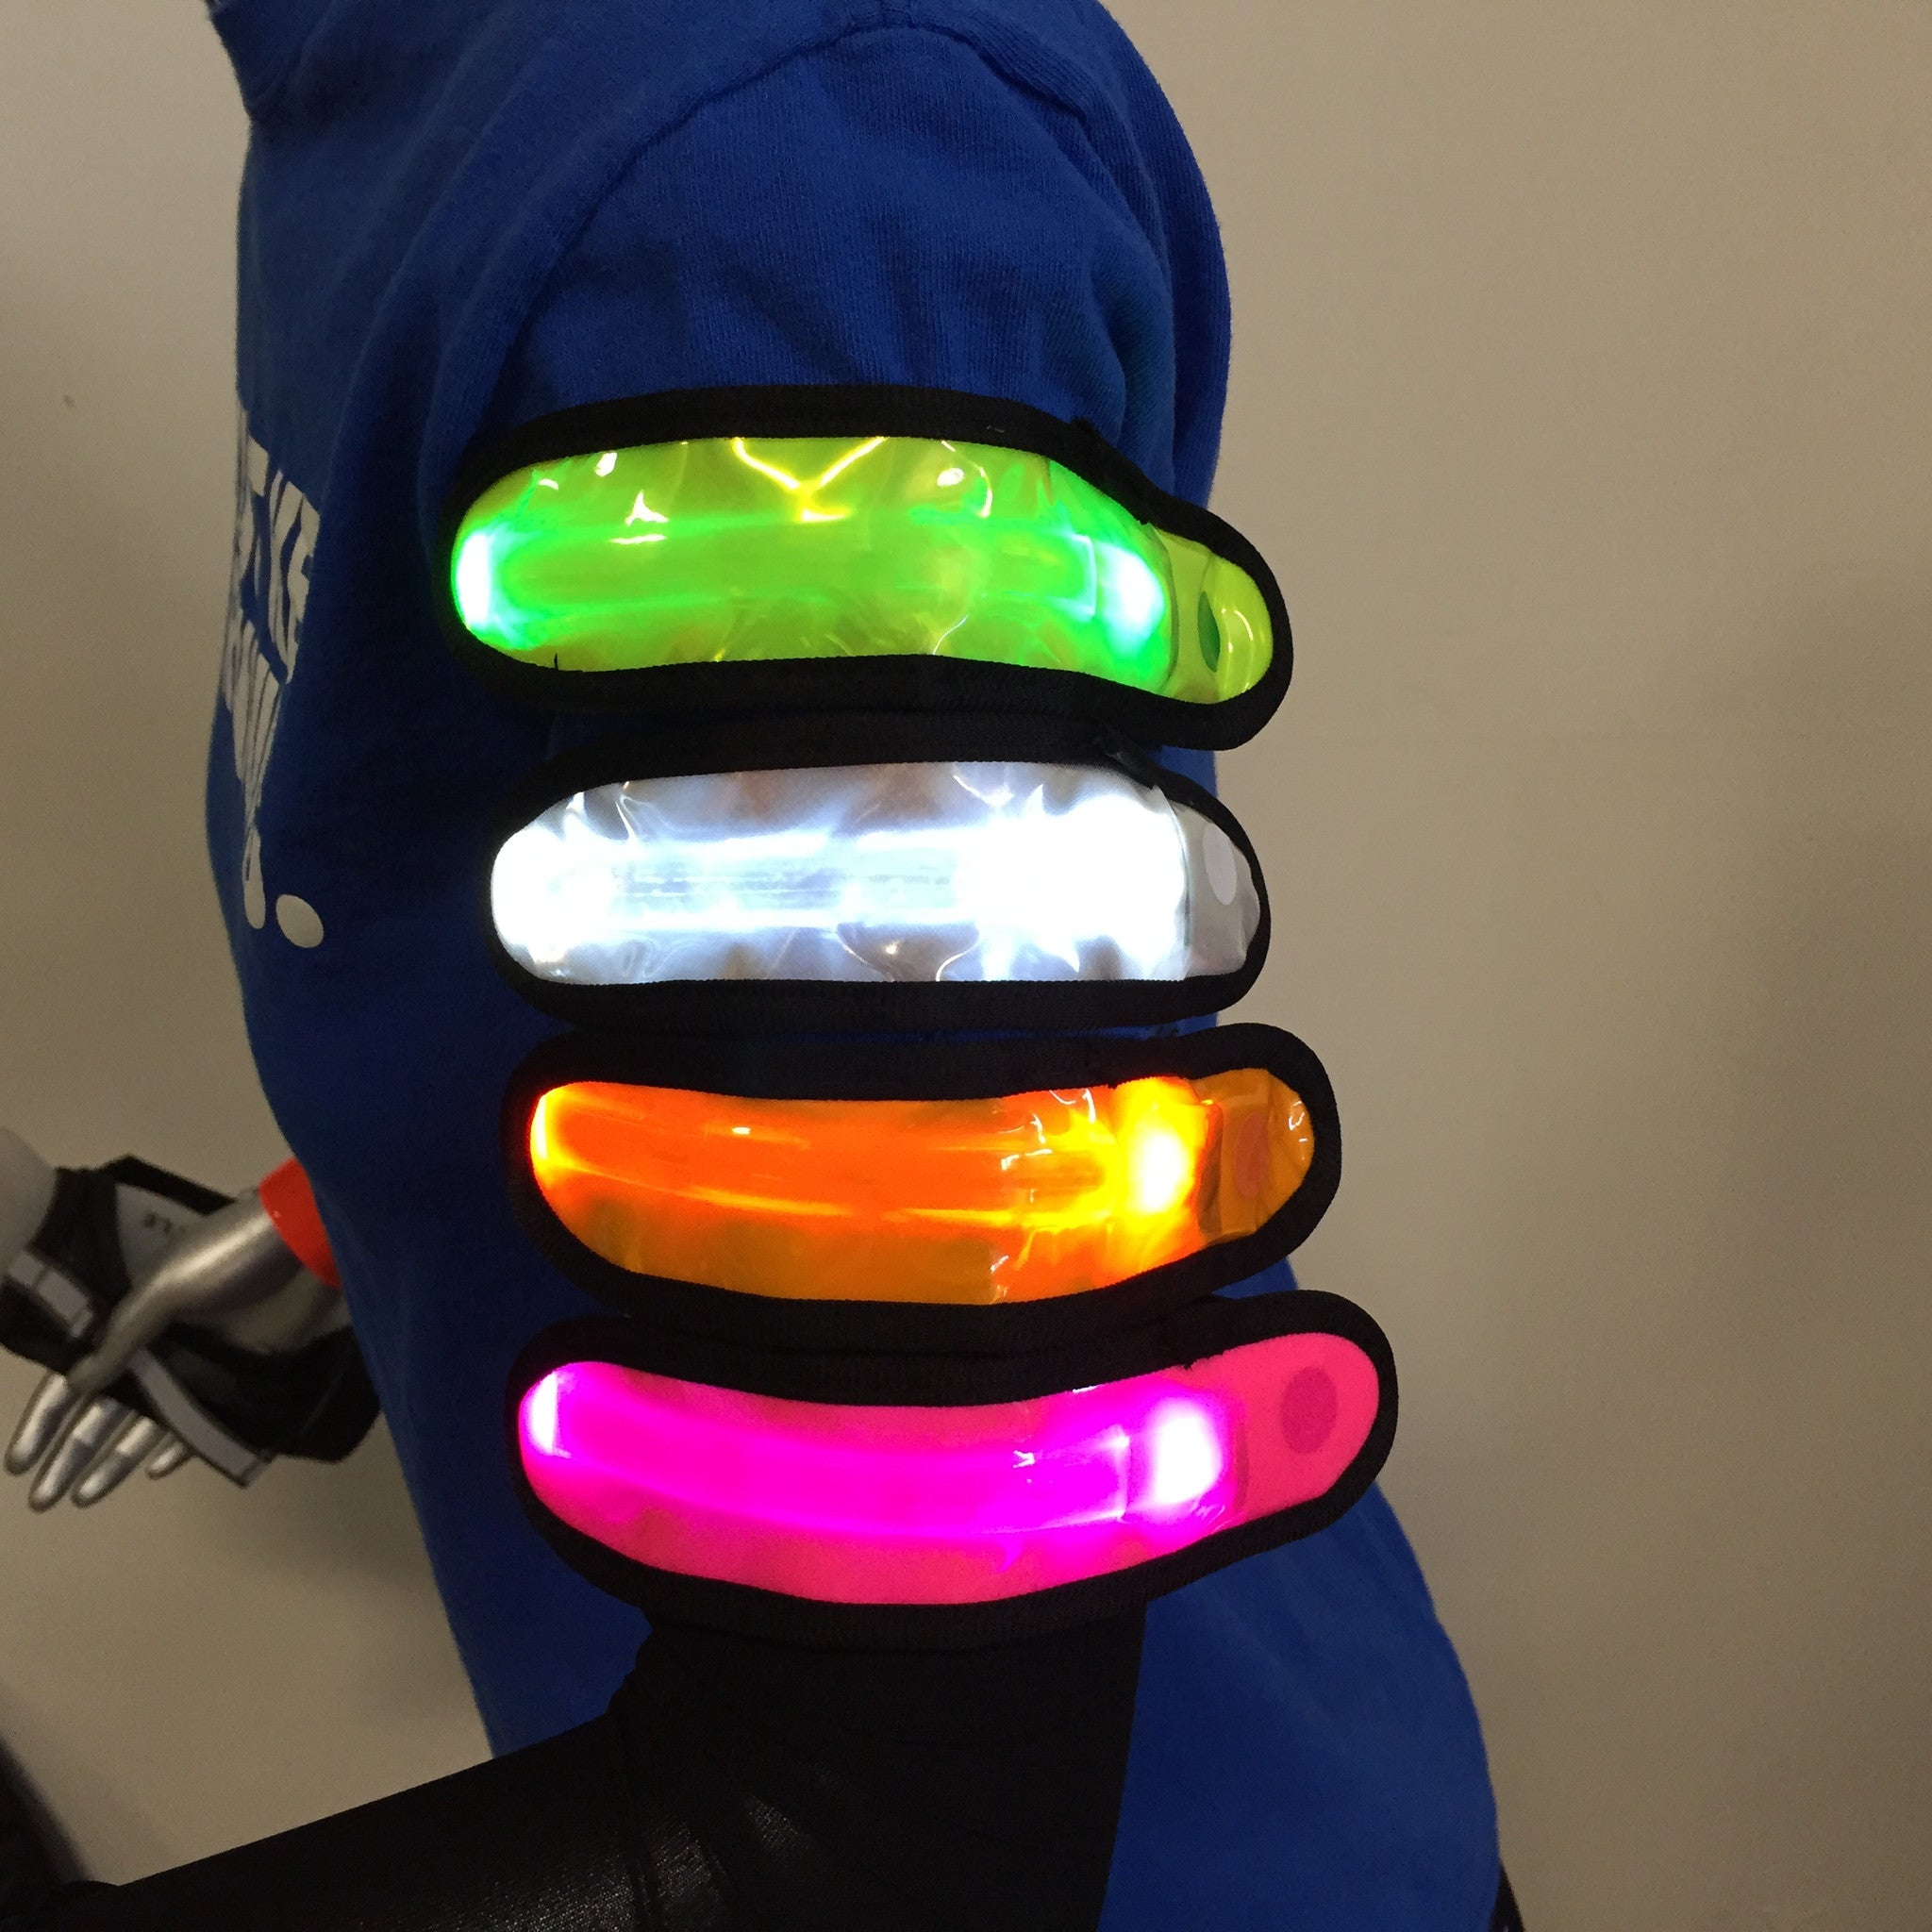 12 Gifts for Runners: Day 7 – Safety Lights